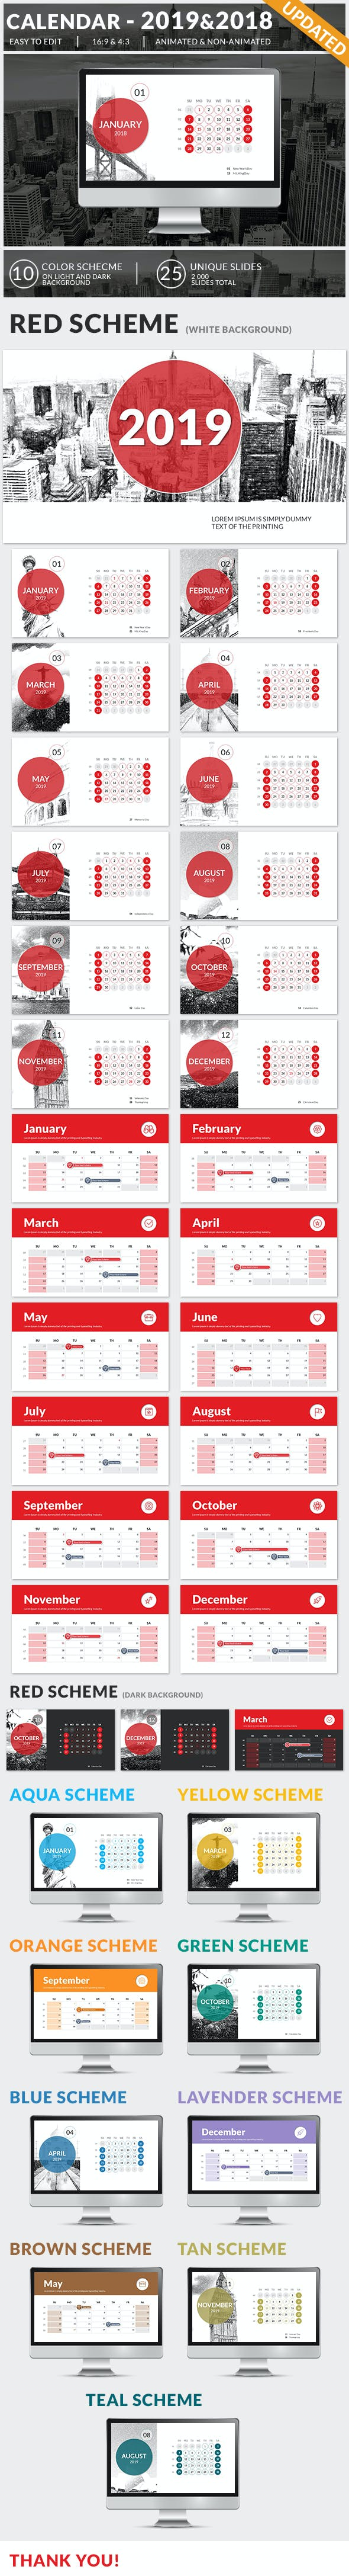 Calendar 2019 And 2018 Powerpoint Presentation Template By Sananik